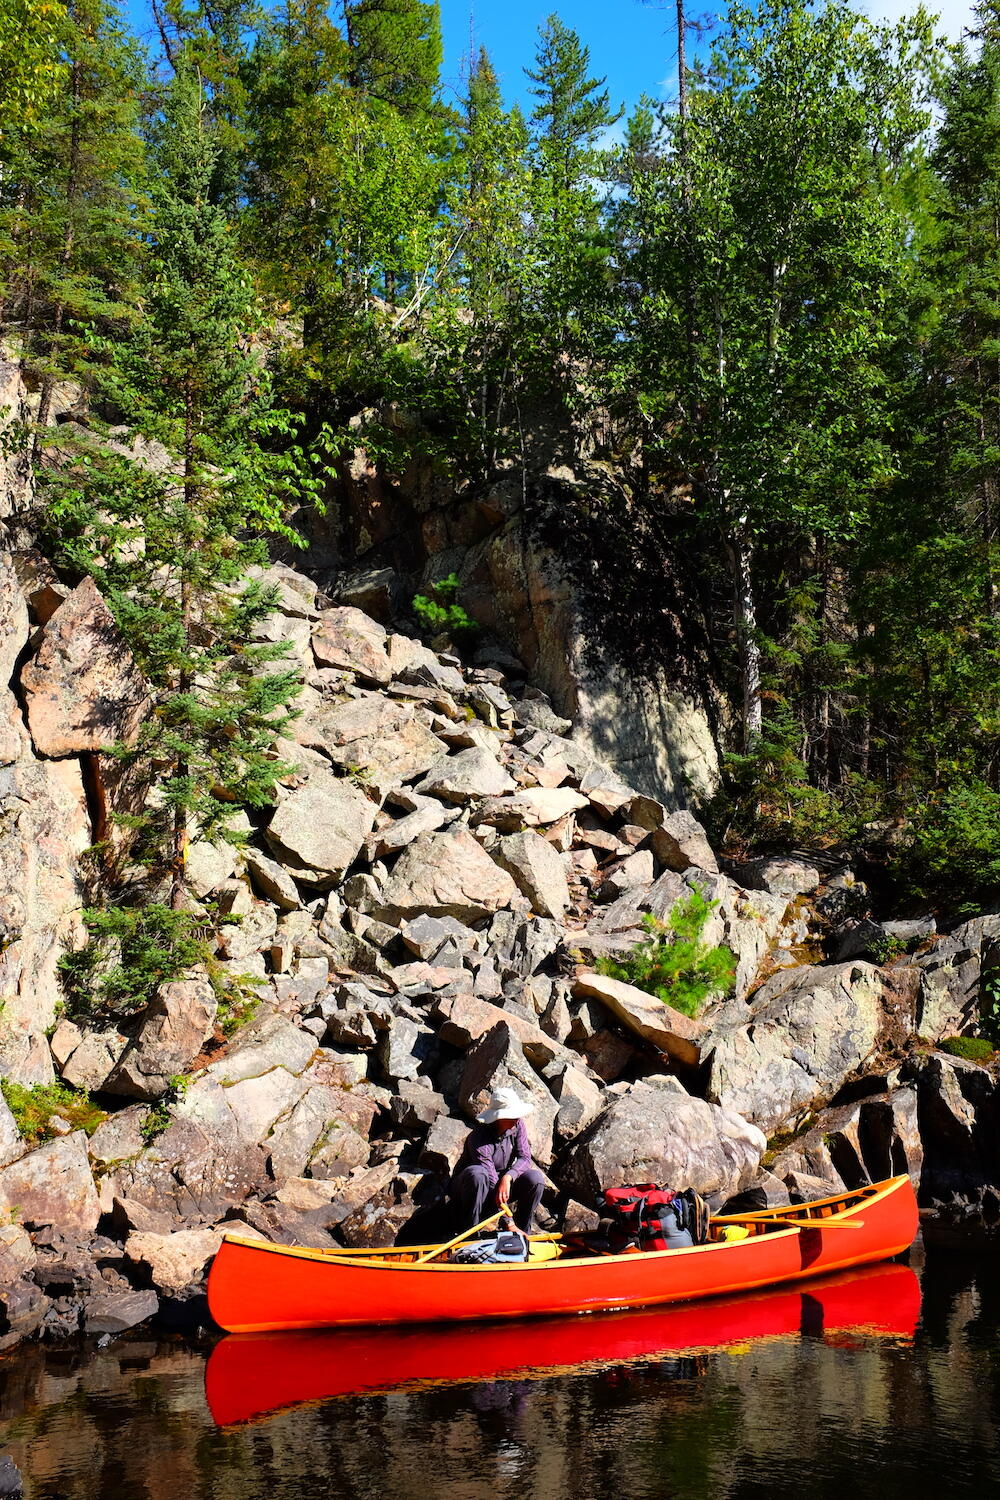 Man in red canoe at base of large boulder portage up a hill